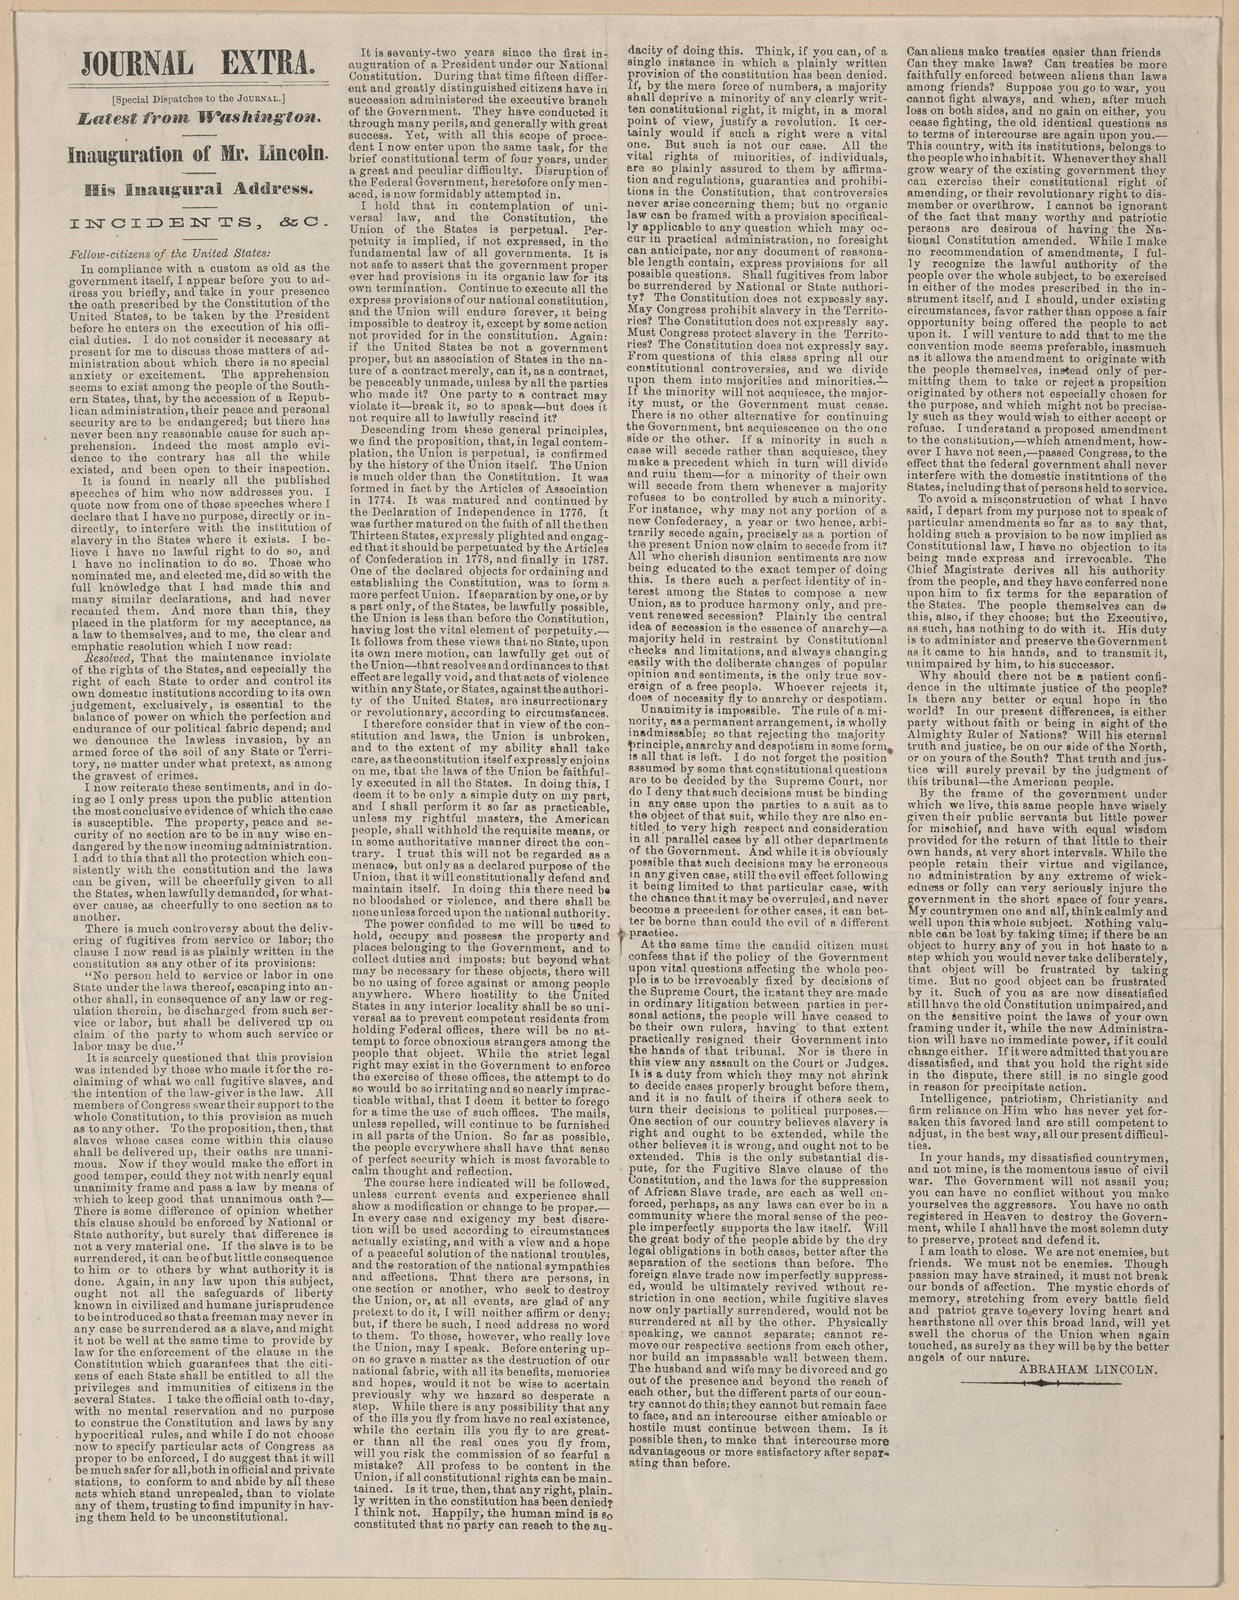 Journal Extra, [newspaper]. Latest from Washington, Inauguration of Mr. Lincoln. His inaugural address. Incidents, &c.